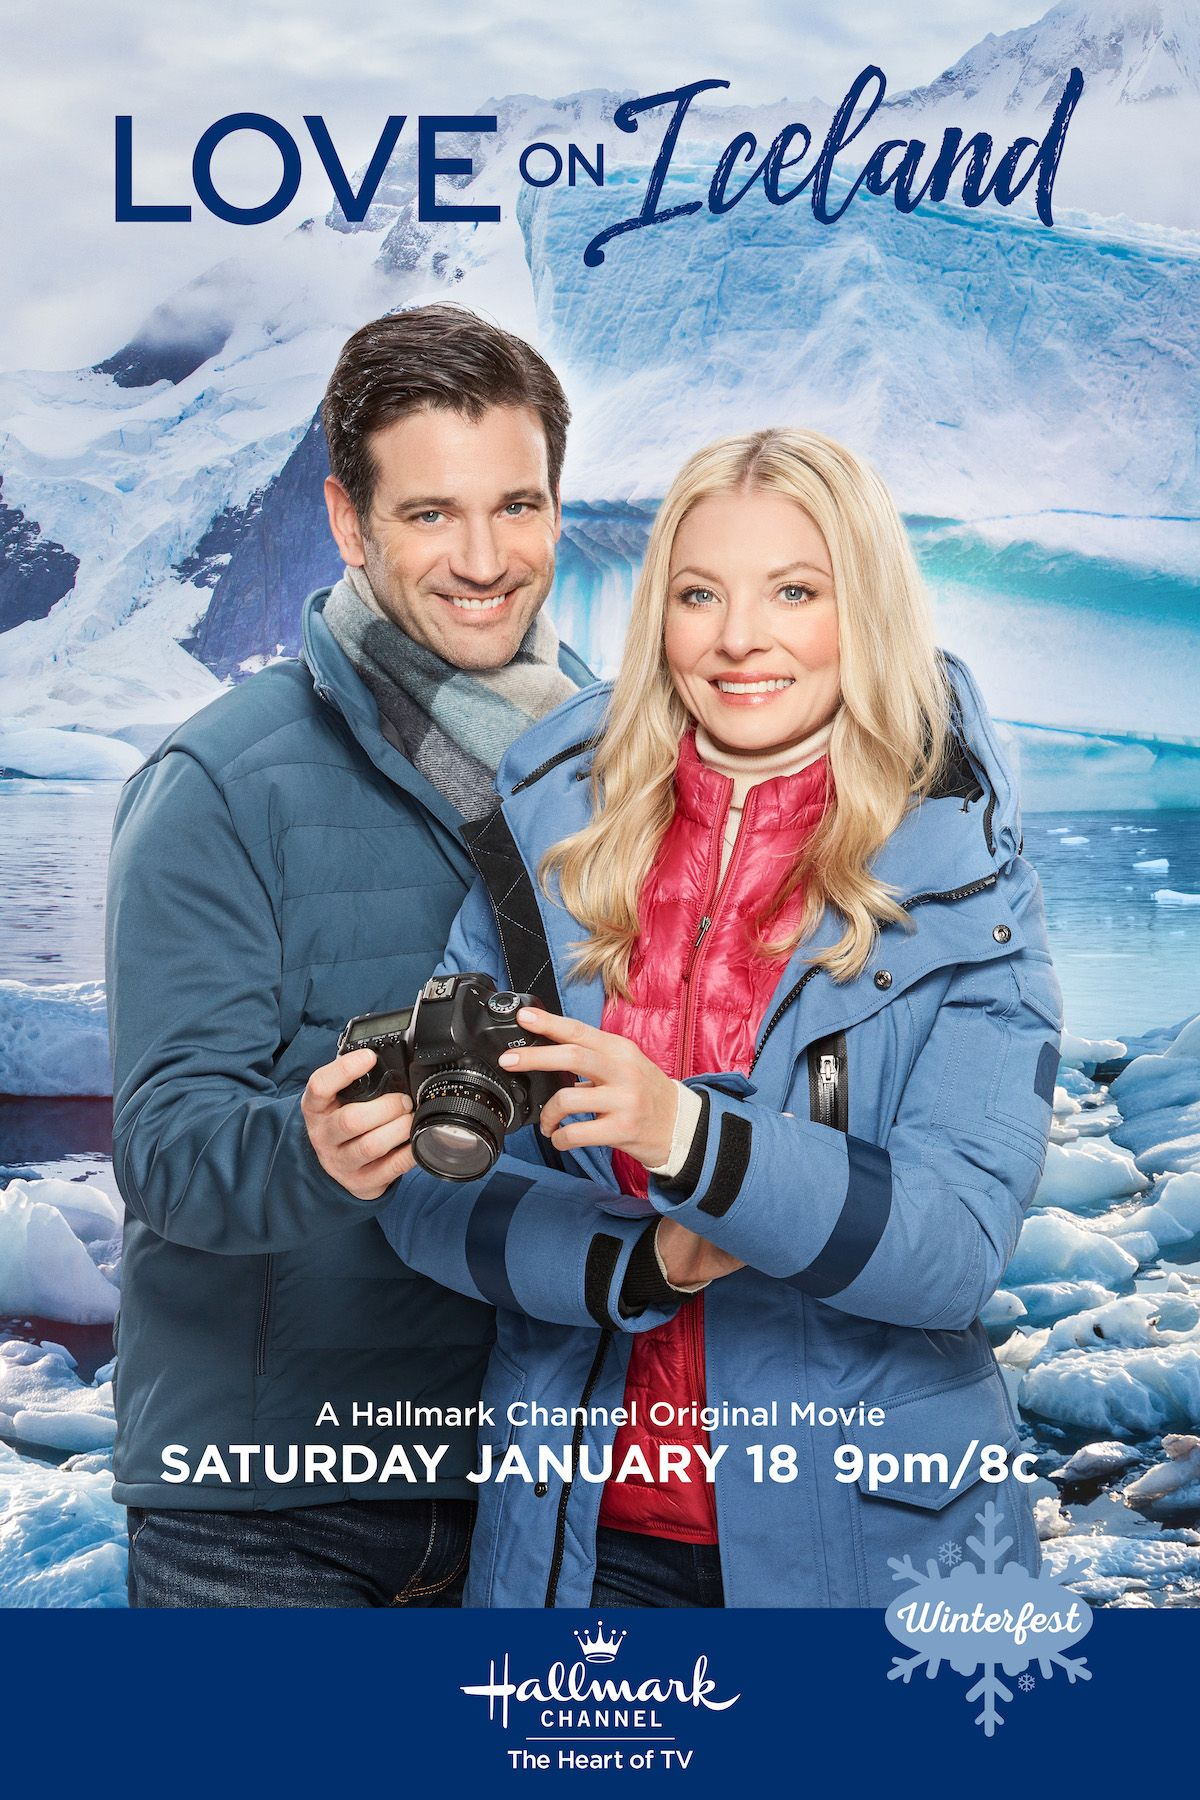 Love On Iceland Stars Kaitlin Doubleday Colin Donnell And The Epic Landscapes Of Icel In 2020 Christmas Movies On Tv Romantic Comedy Movies Hallmark Movies Romance